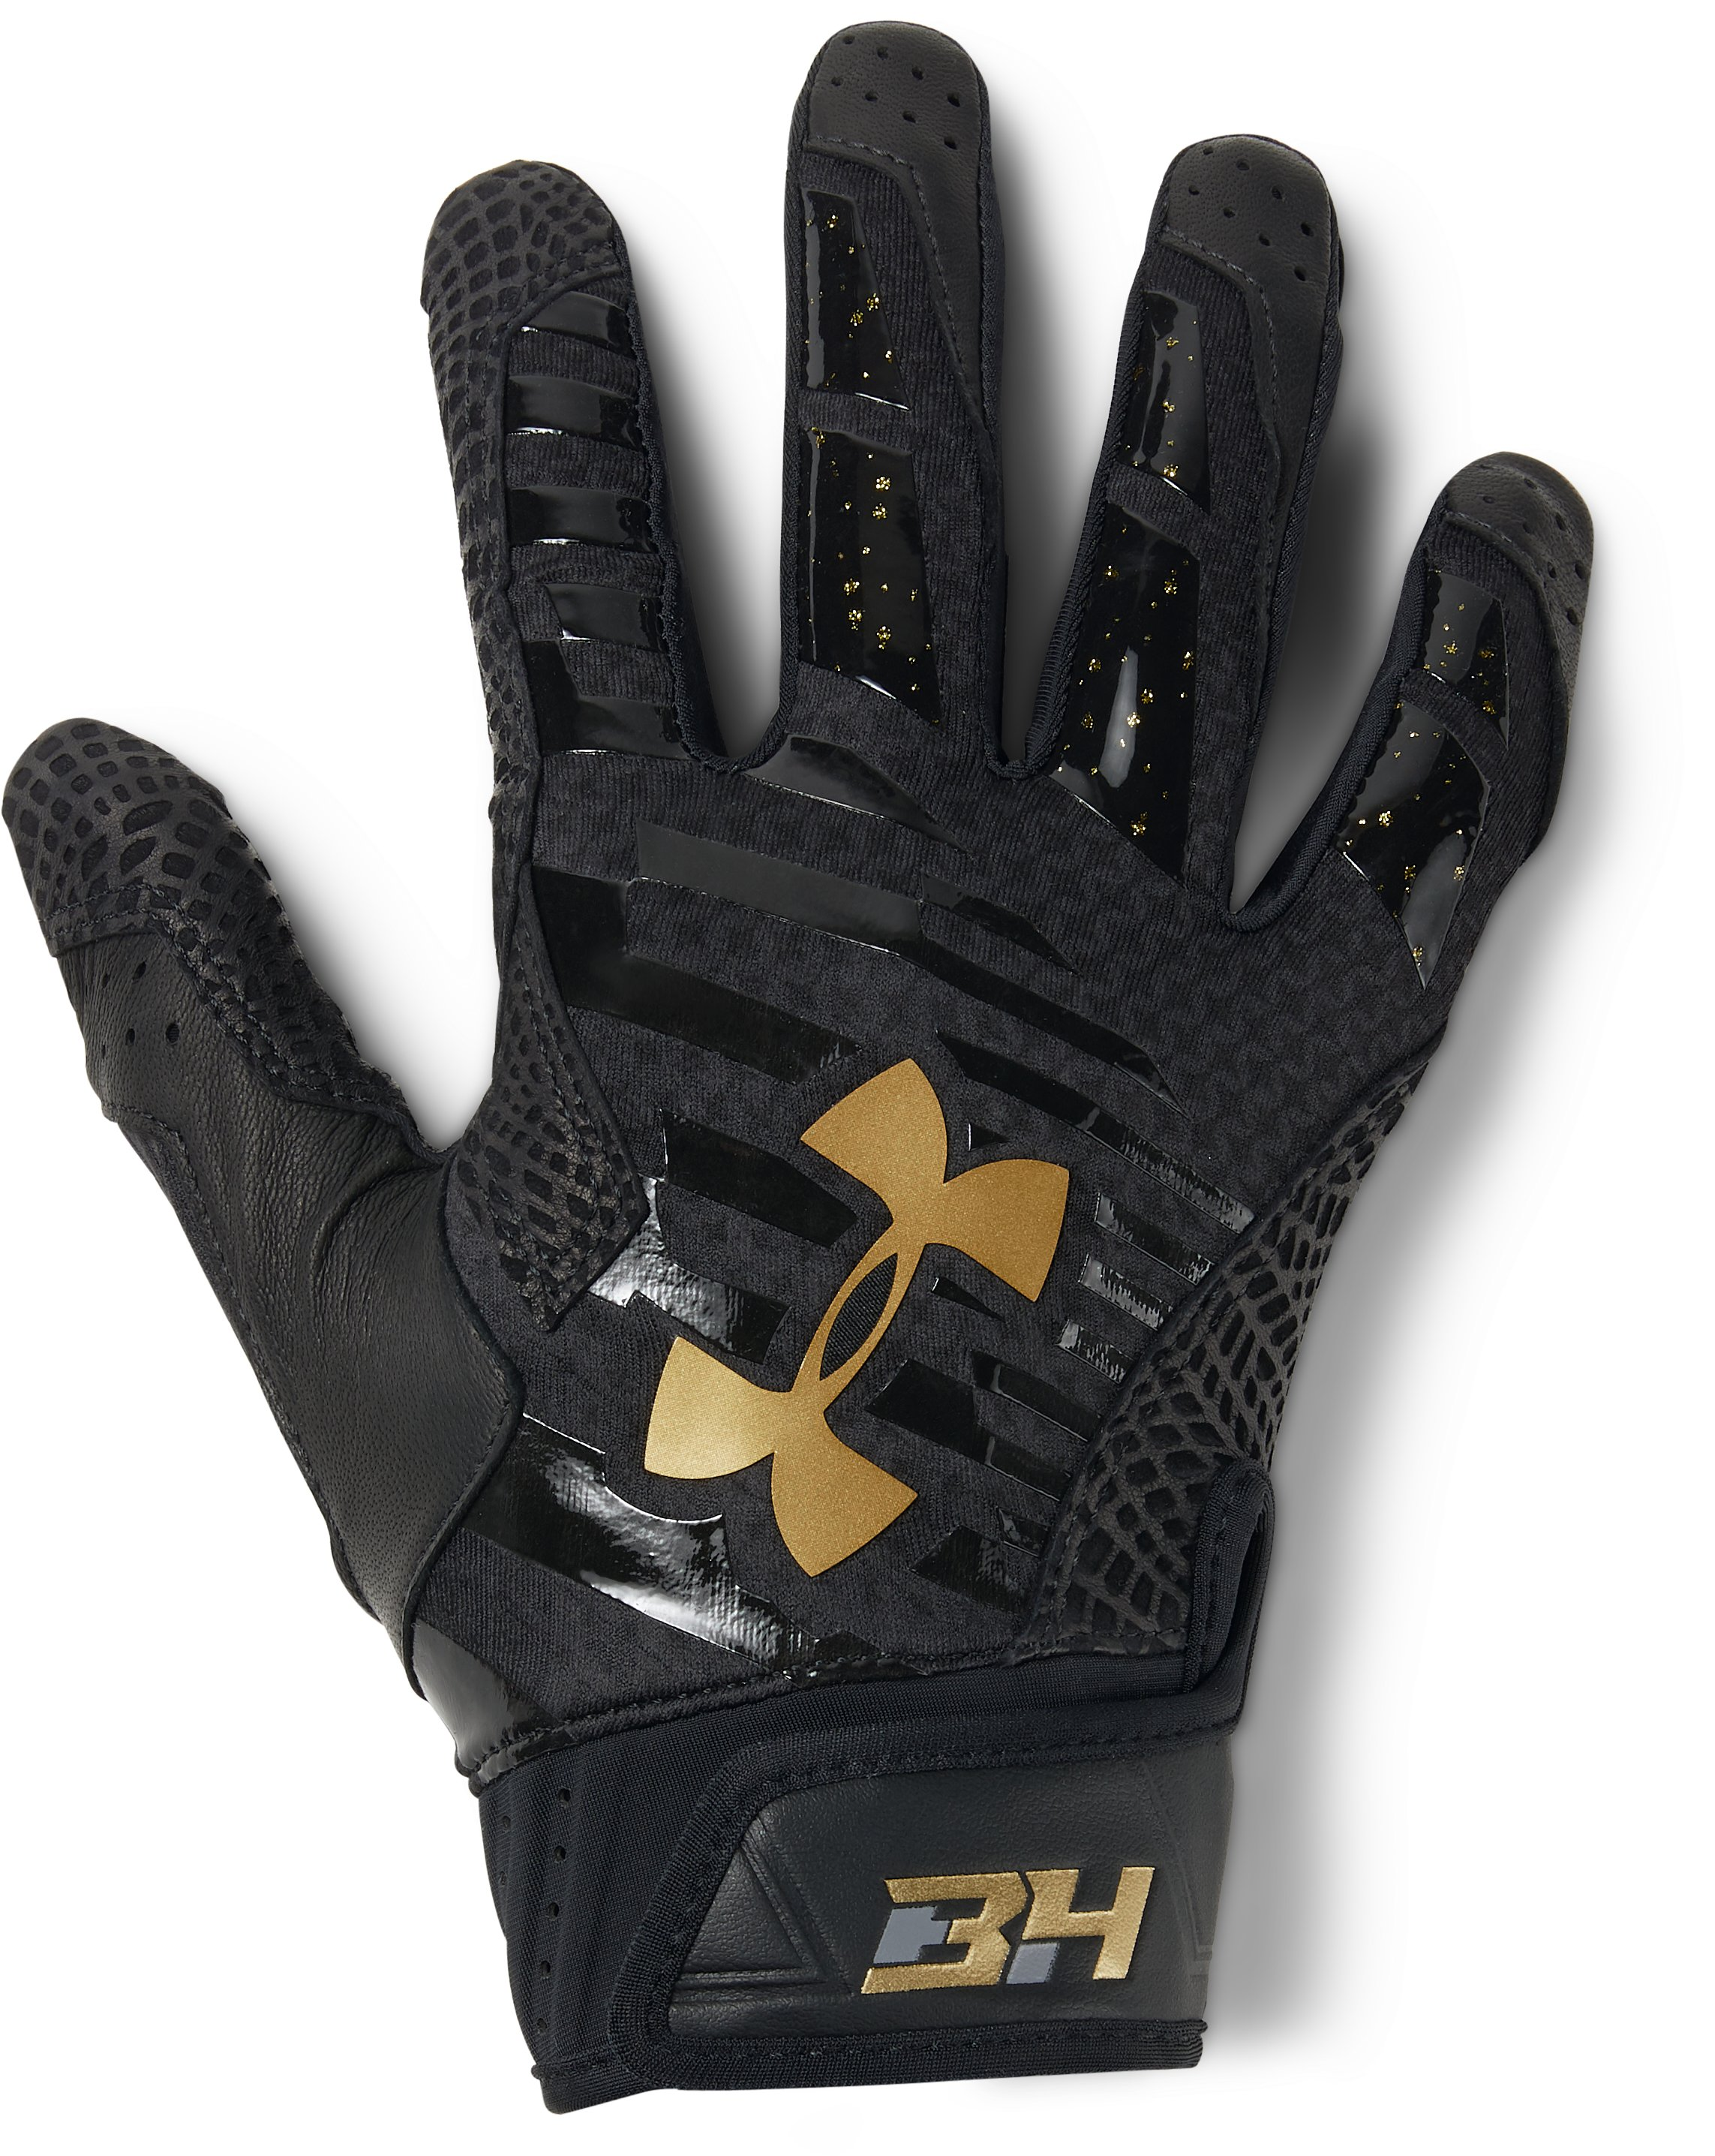 Men's BH34 Spotlight Baseball Gloves 1 Color $54.99